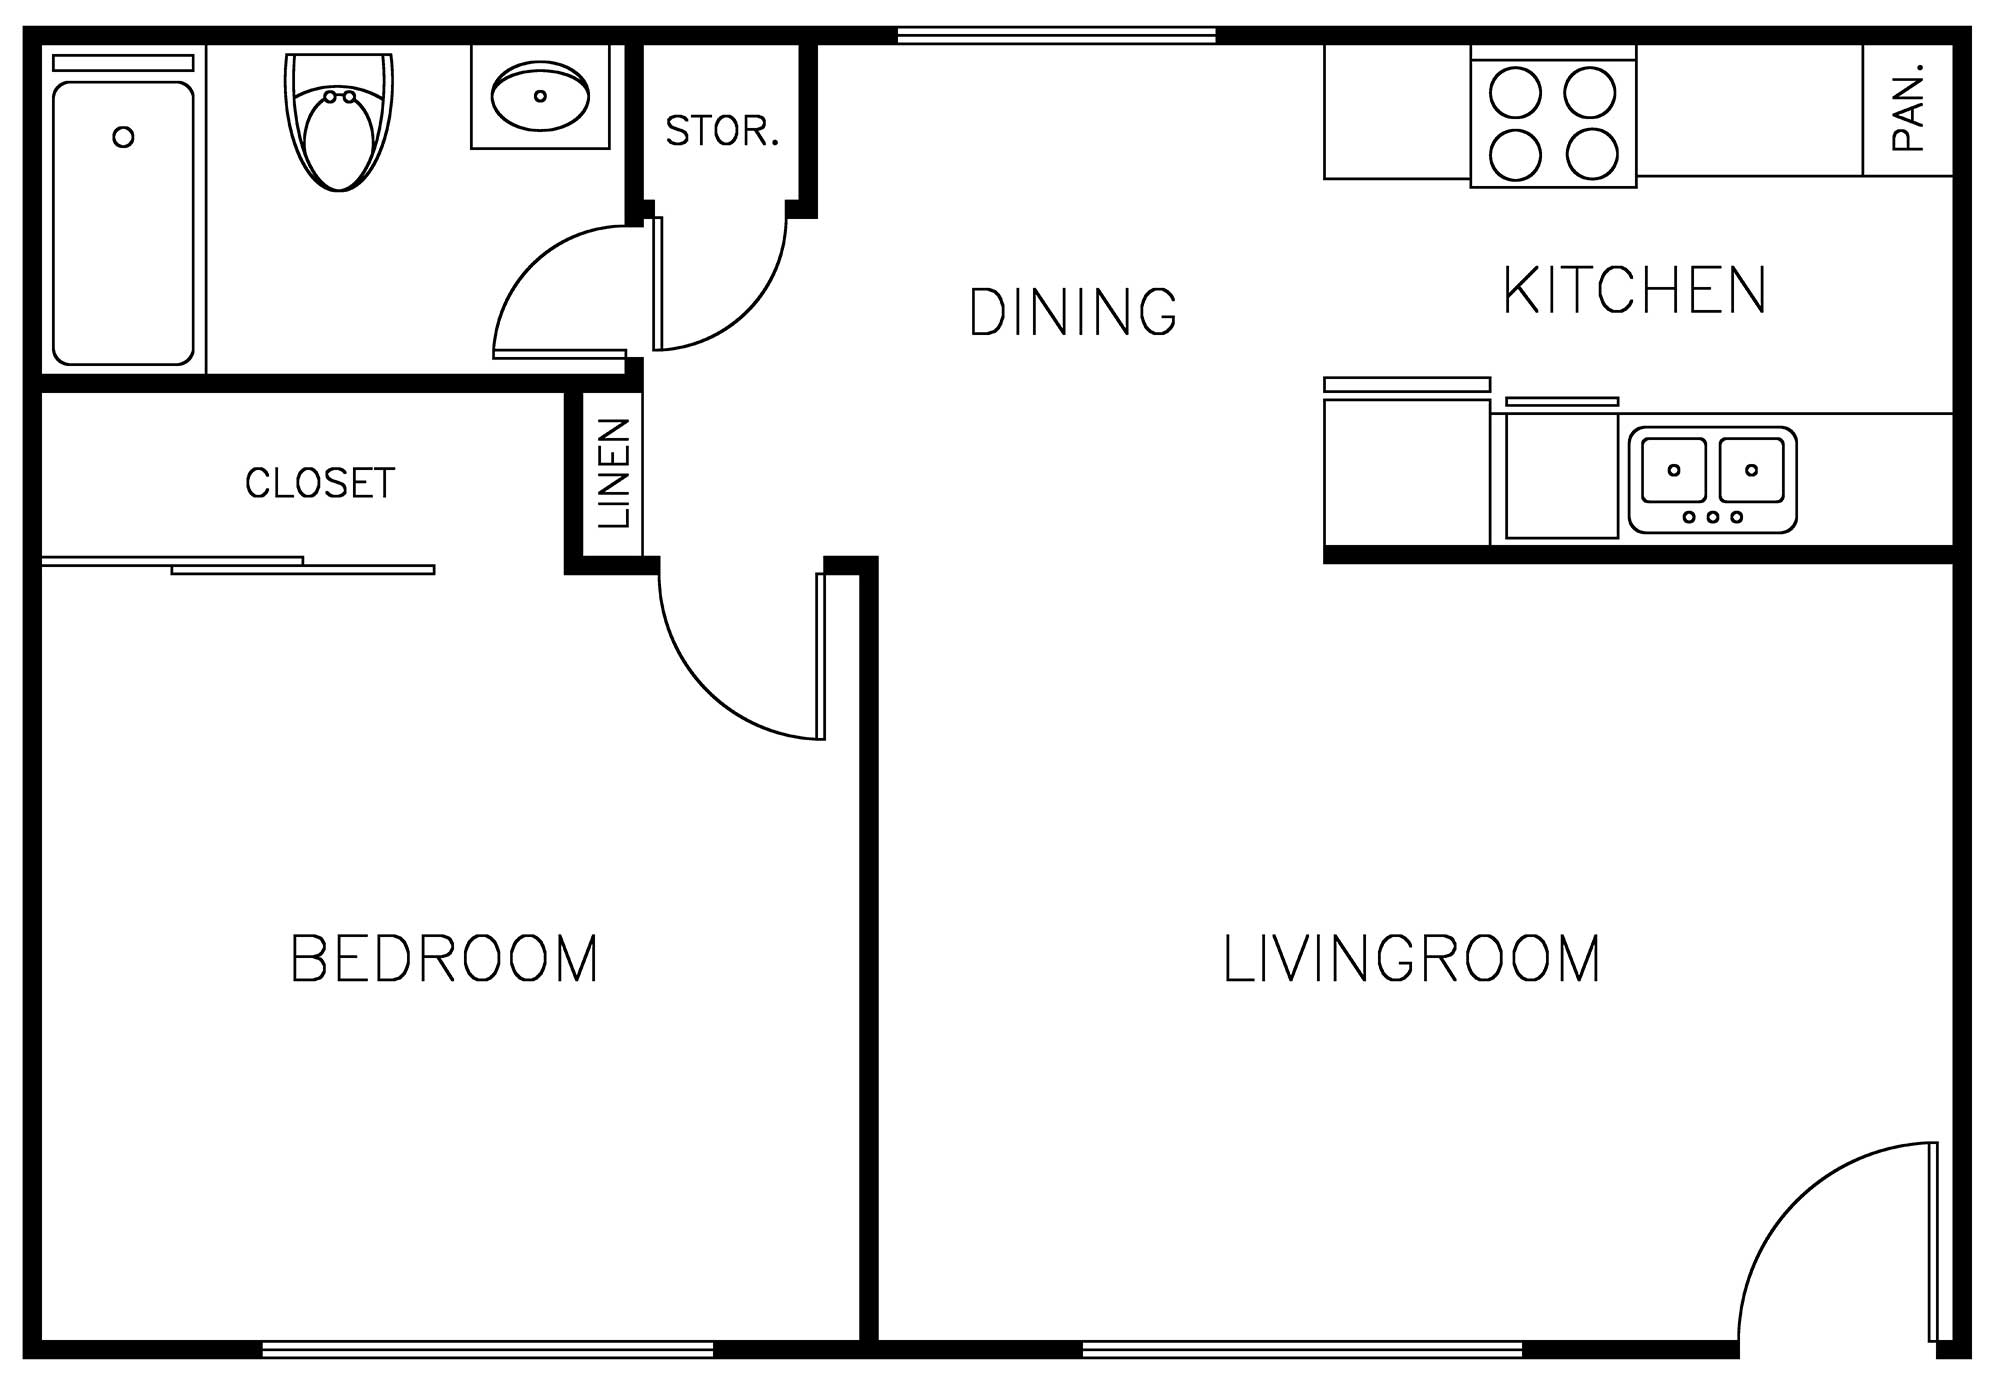 9212 Burke Street Apartments: 1 Bedroom floor plan